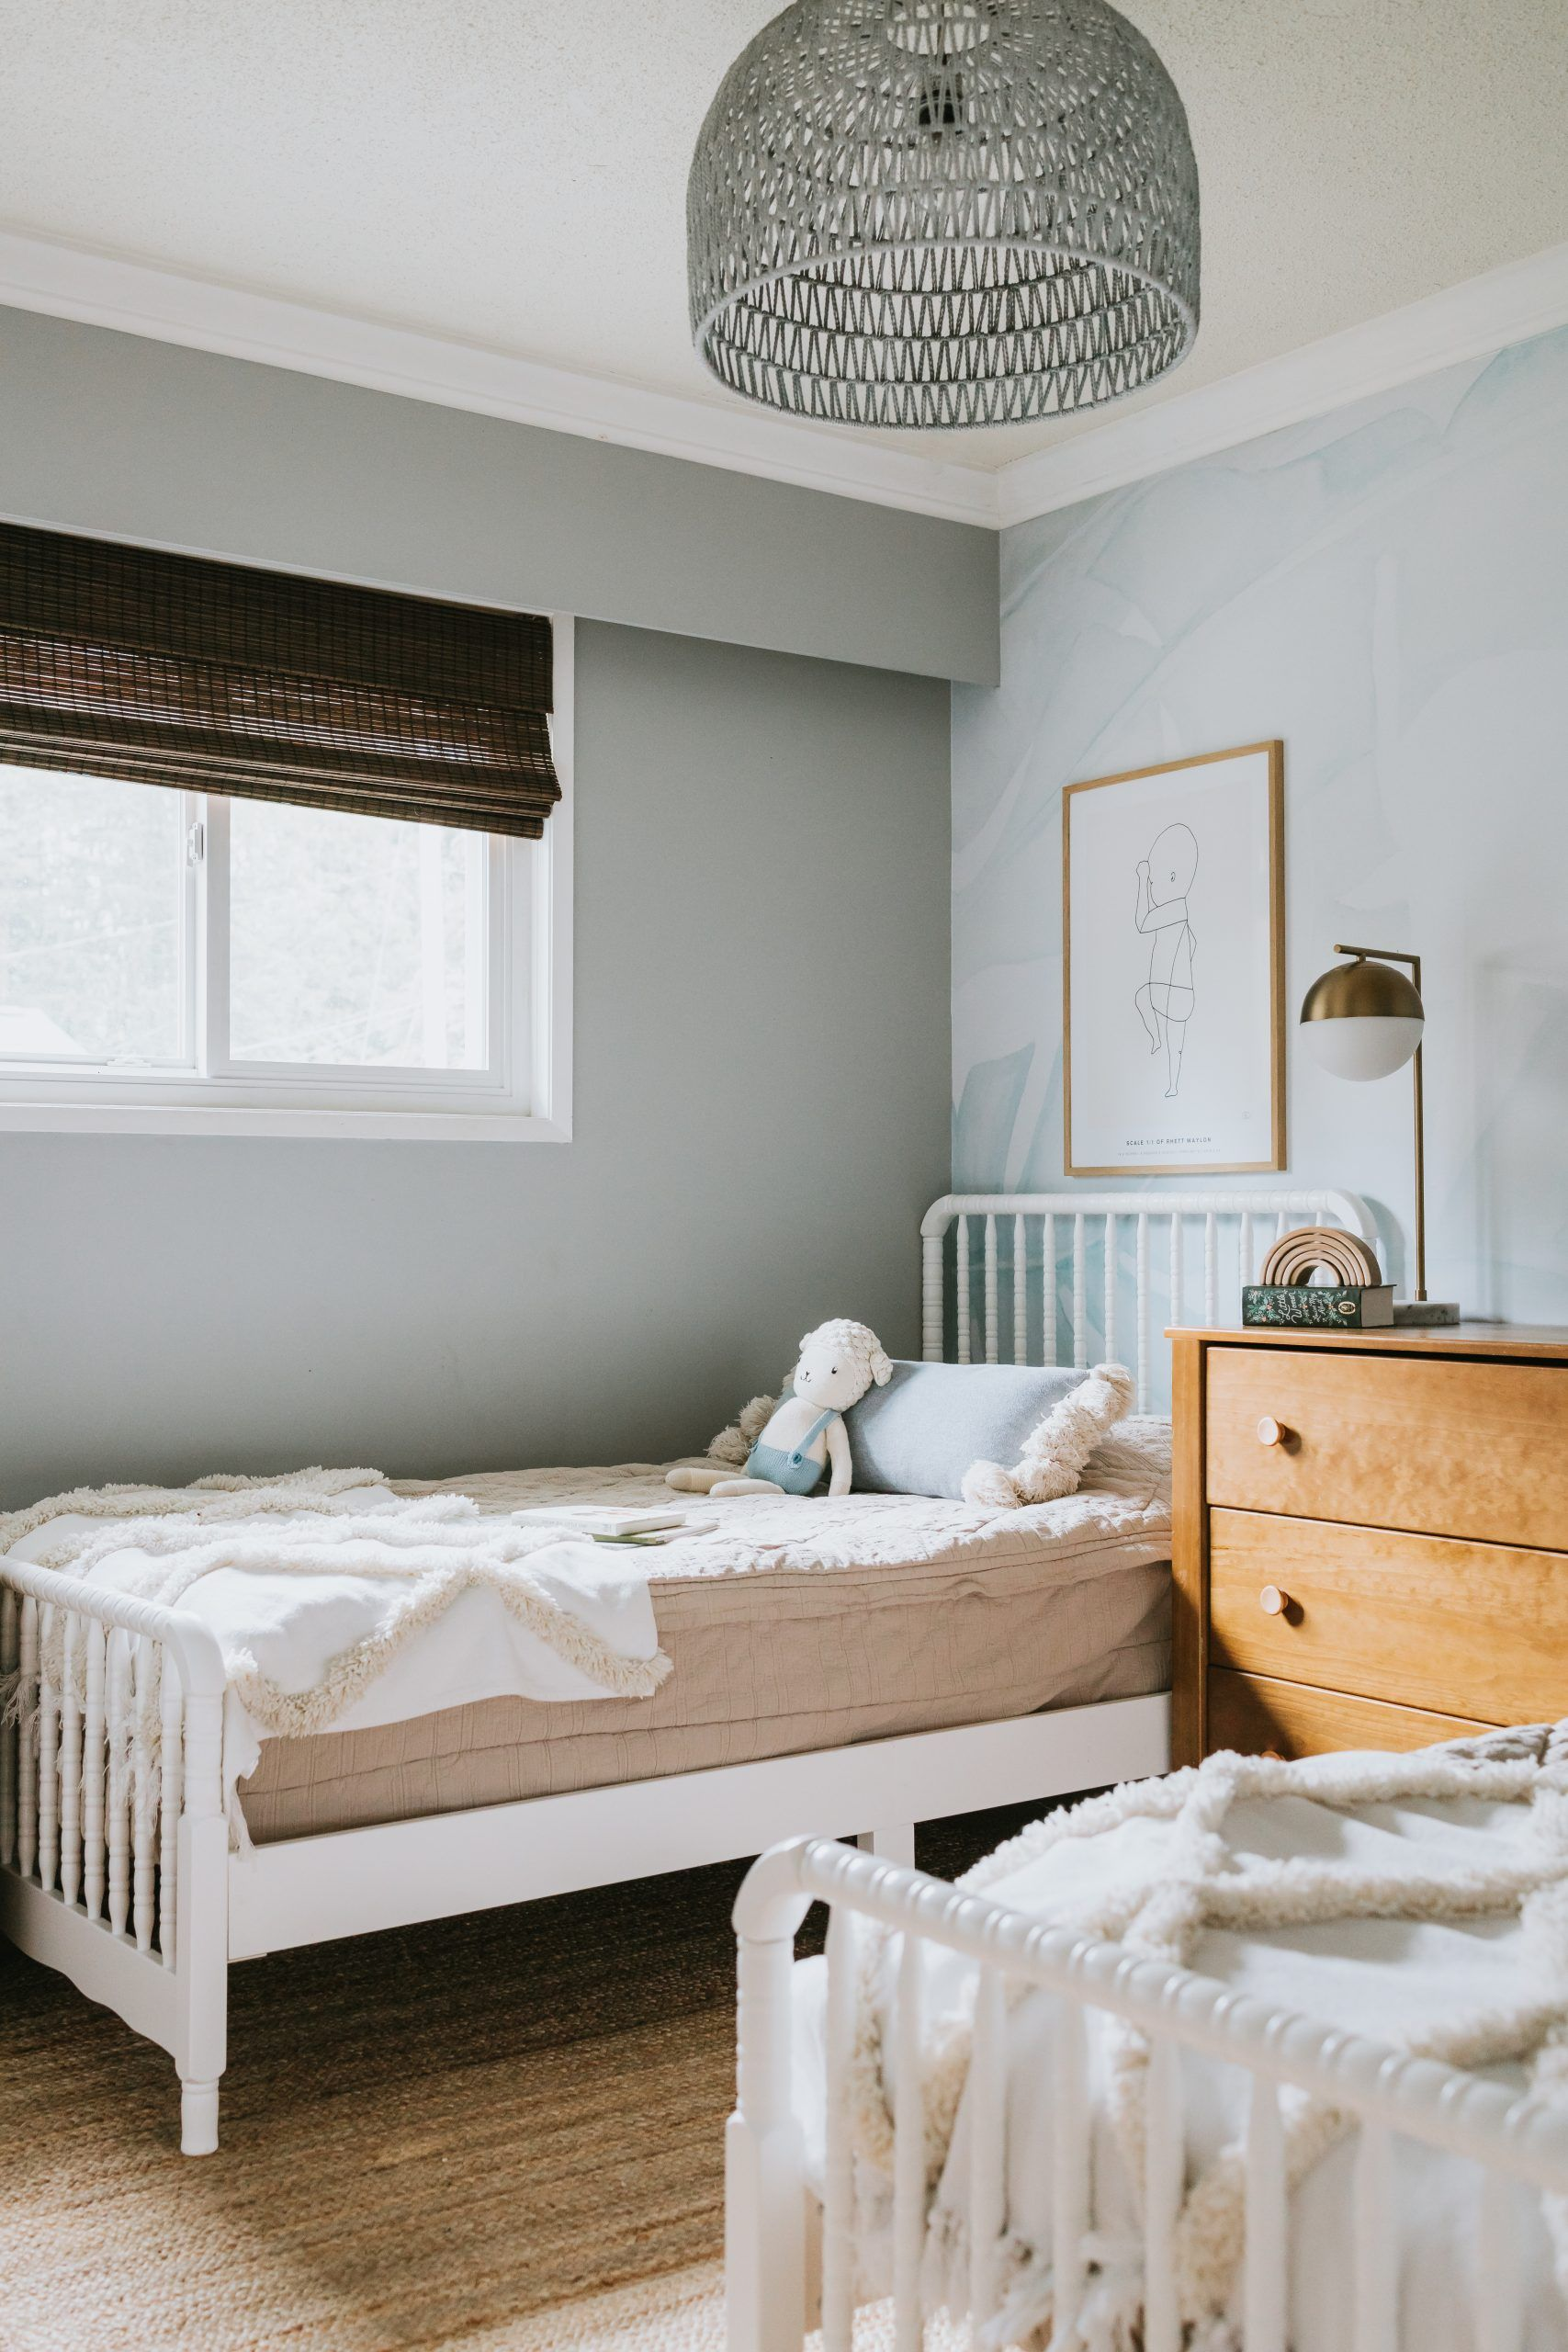 Top 10 Paint Colours Jessica Sara Morris in 2020 Most